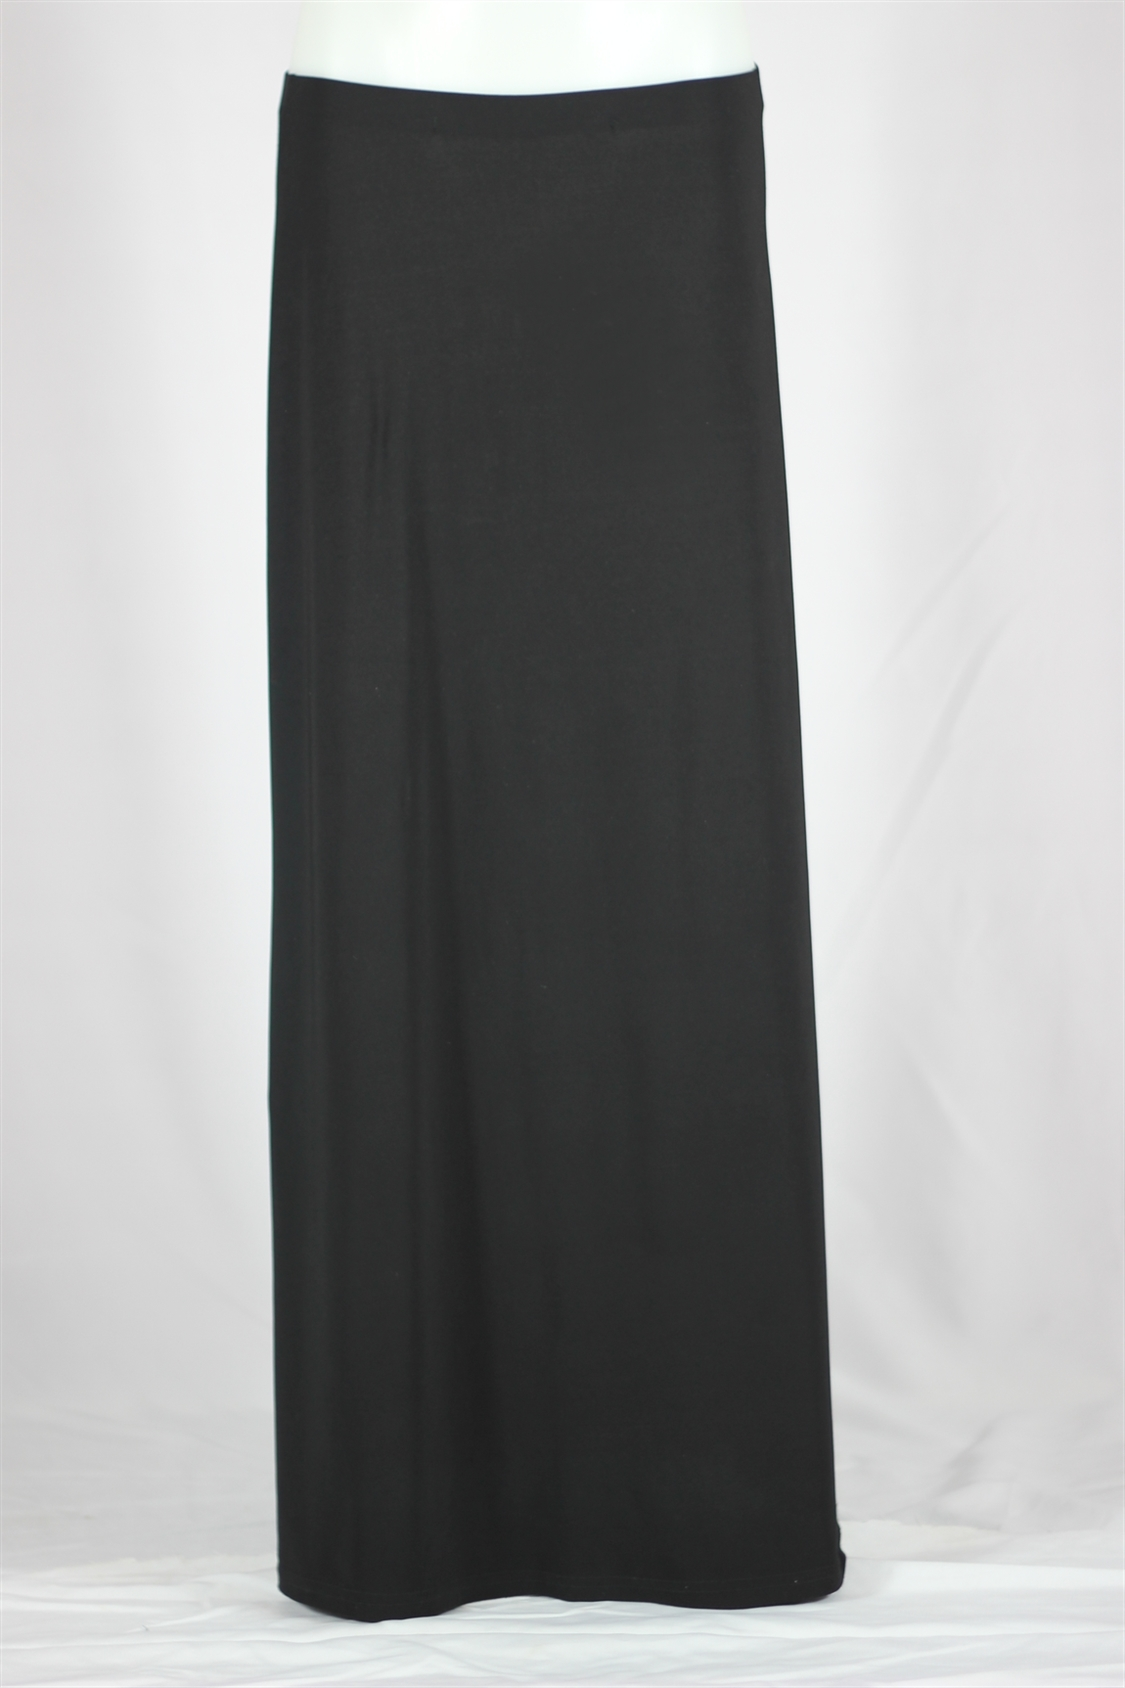 Mink Black Long Skirt, Sizes 6-18